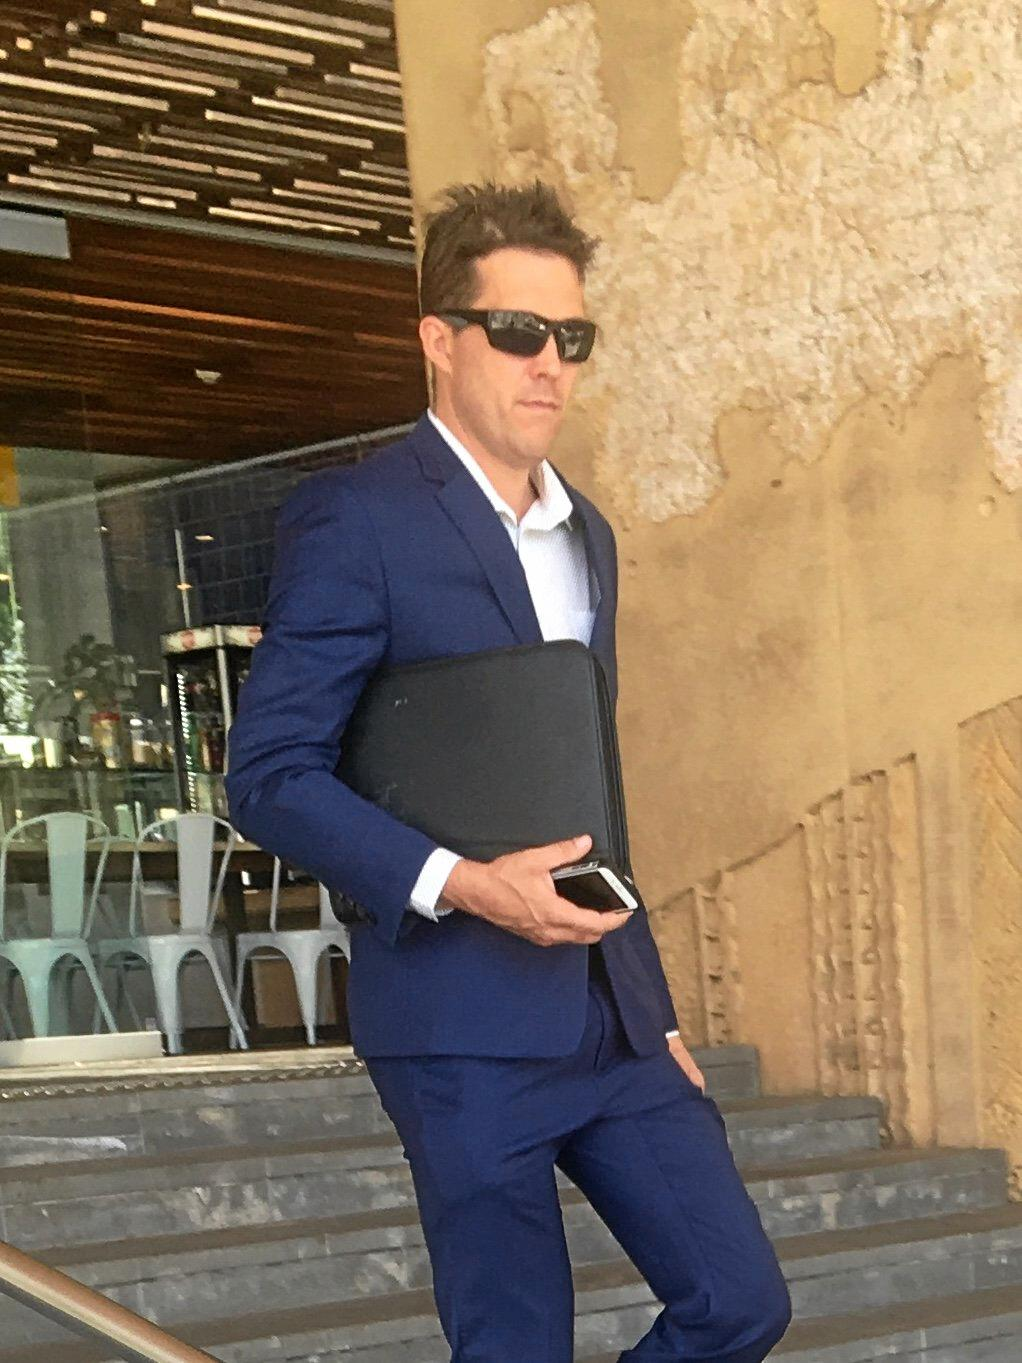 IN ON THE ACT: Anthony Robert Webb leaves Ipswich Courthouse after admitting to possession of handcuffs, tasers and police epaulettes. He later admitted to an addition charge of impersonating police.